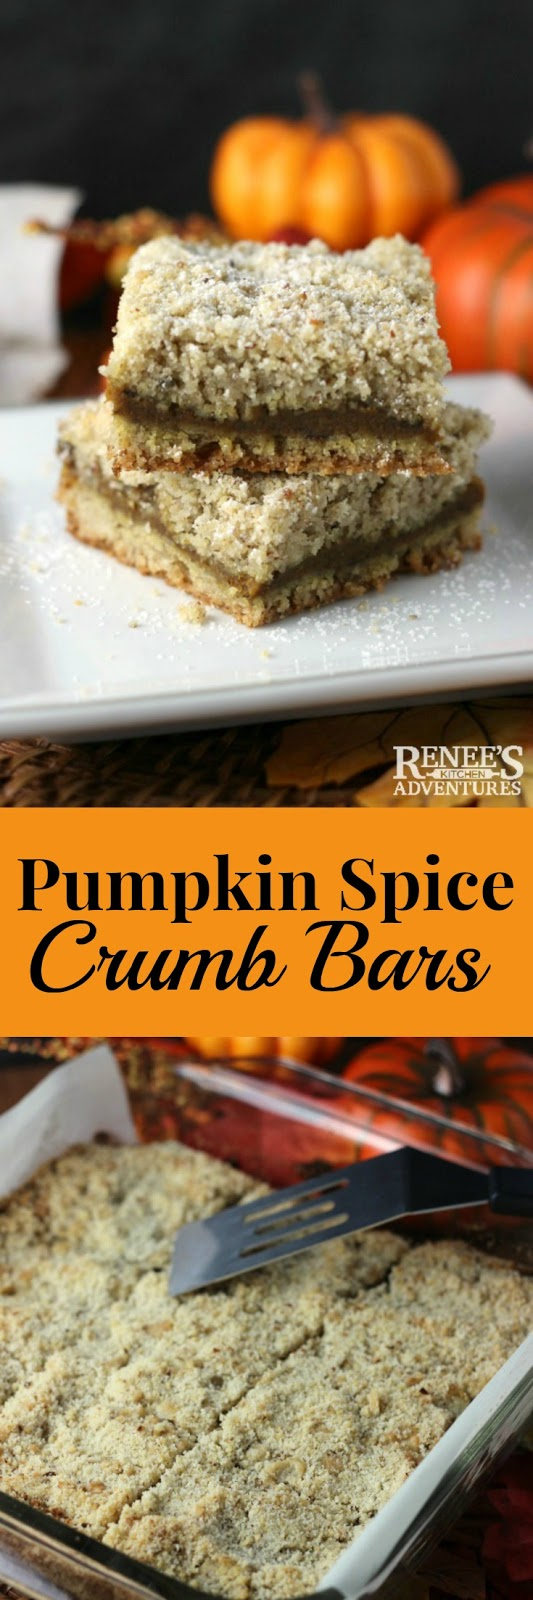 Pumpkin Spice Crumb Bars - easy pumpkin dessert cookie recipe made with pure pumpkin puree, butter and brown sugar